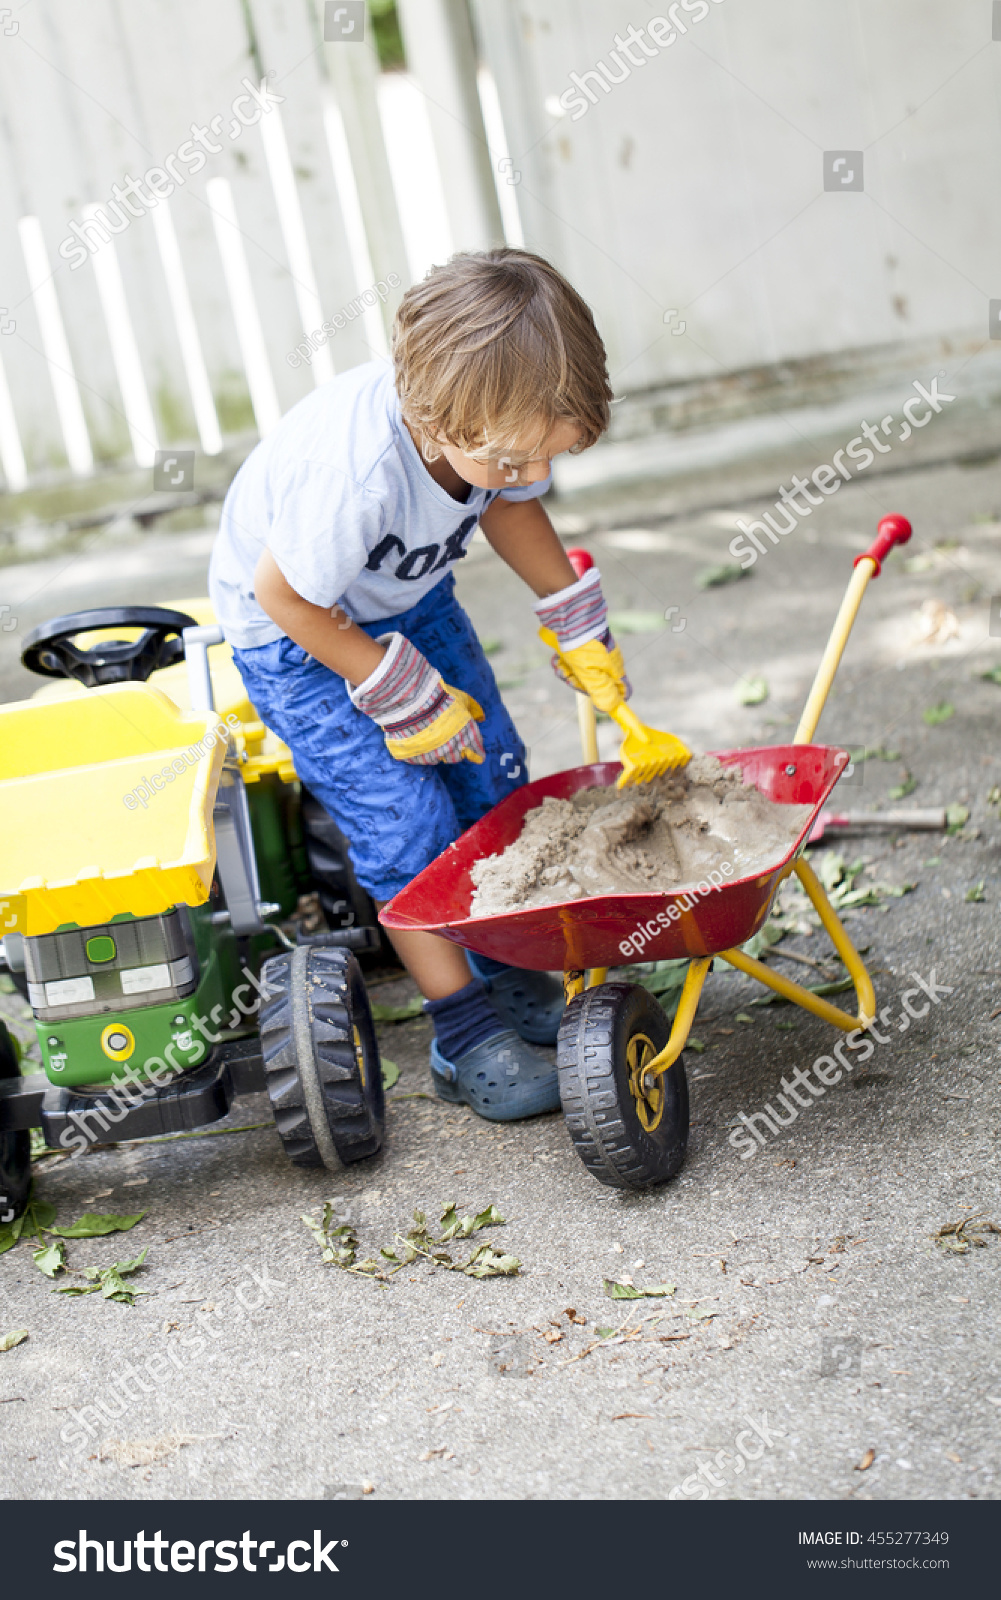 Boy On Tractor : Small boy on his toys tractor stock photo